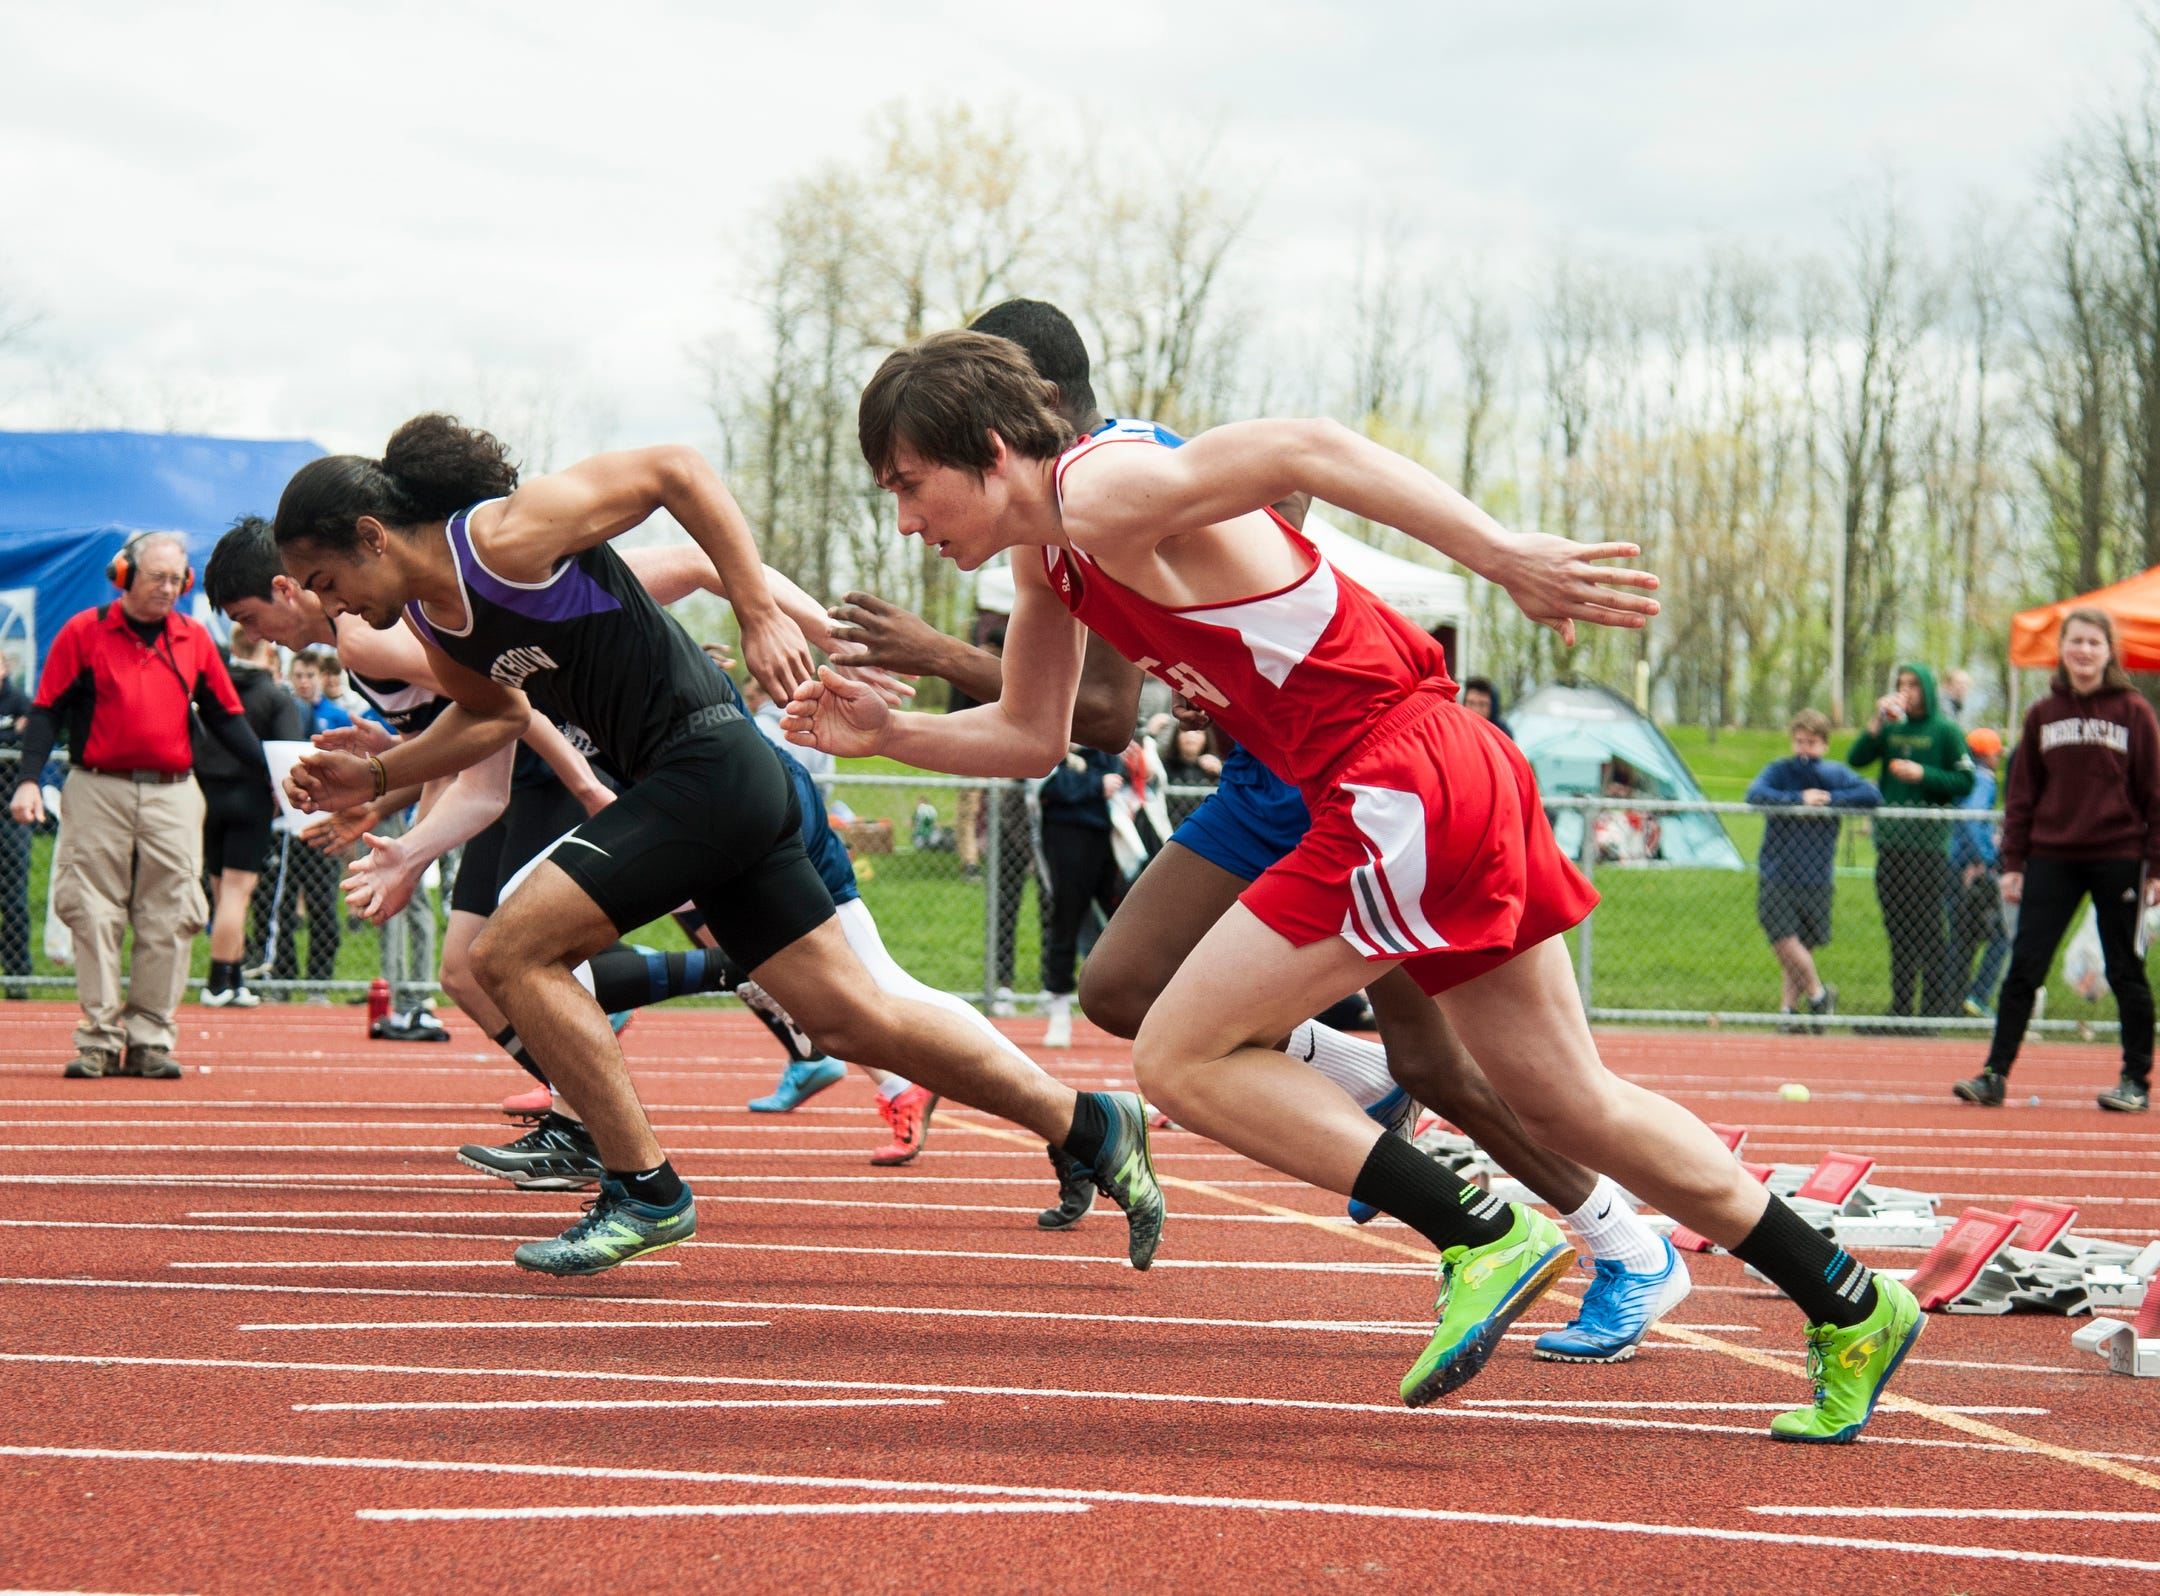 Boys take off from the starting block in the 100m prelims during the Burlington Invitational high school track and field meet at Buck Hard Field on Saturday May 11, 2019 in Burlington, Vermont.